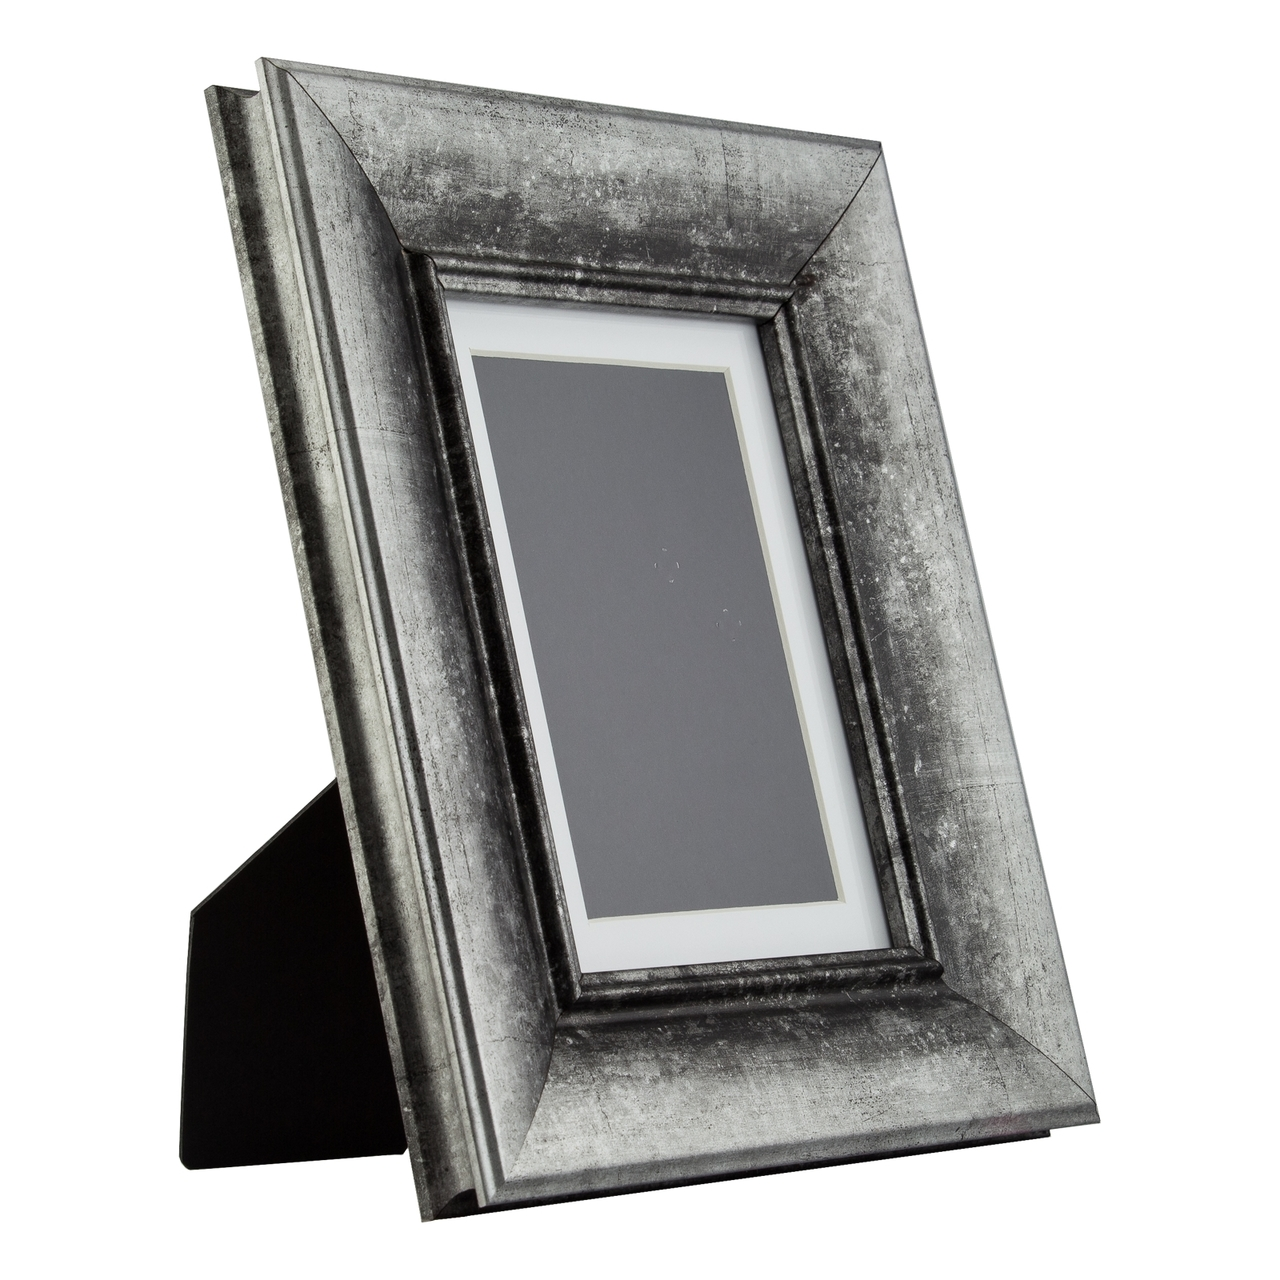 Verandah 212 Table-top, Assisi Vintage Silver Picture Frame